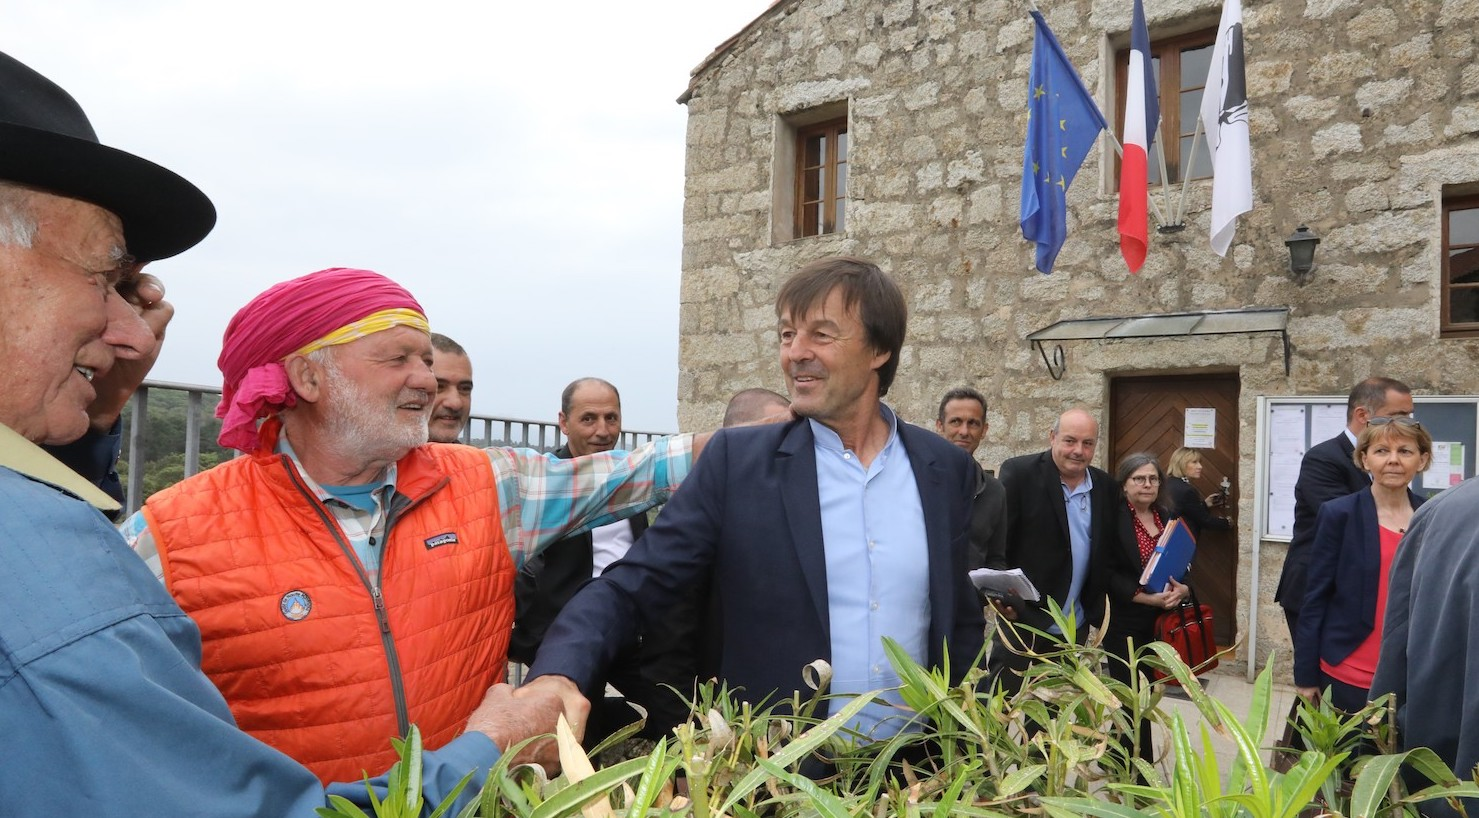 Nicolas Hulot à Quenza Photo MJT